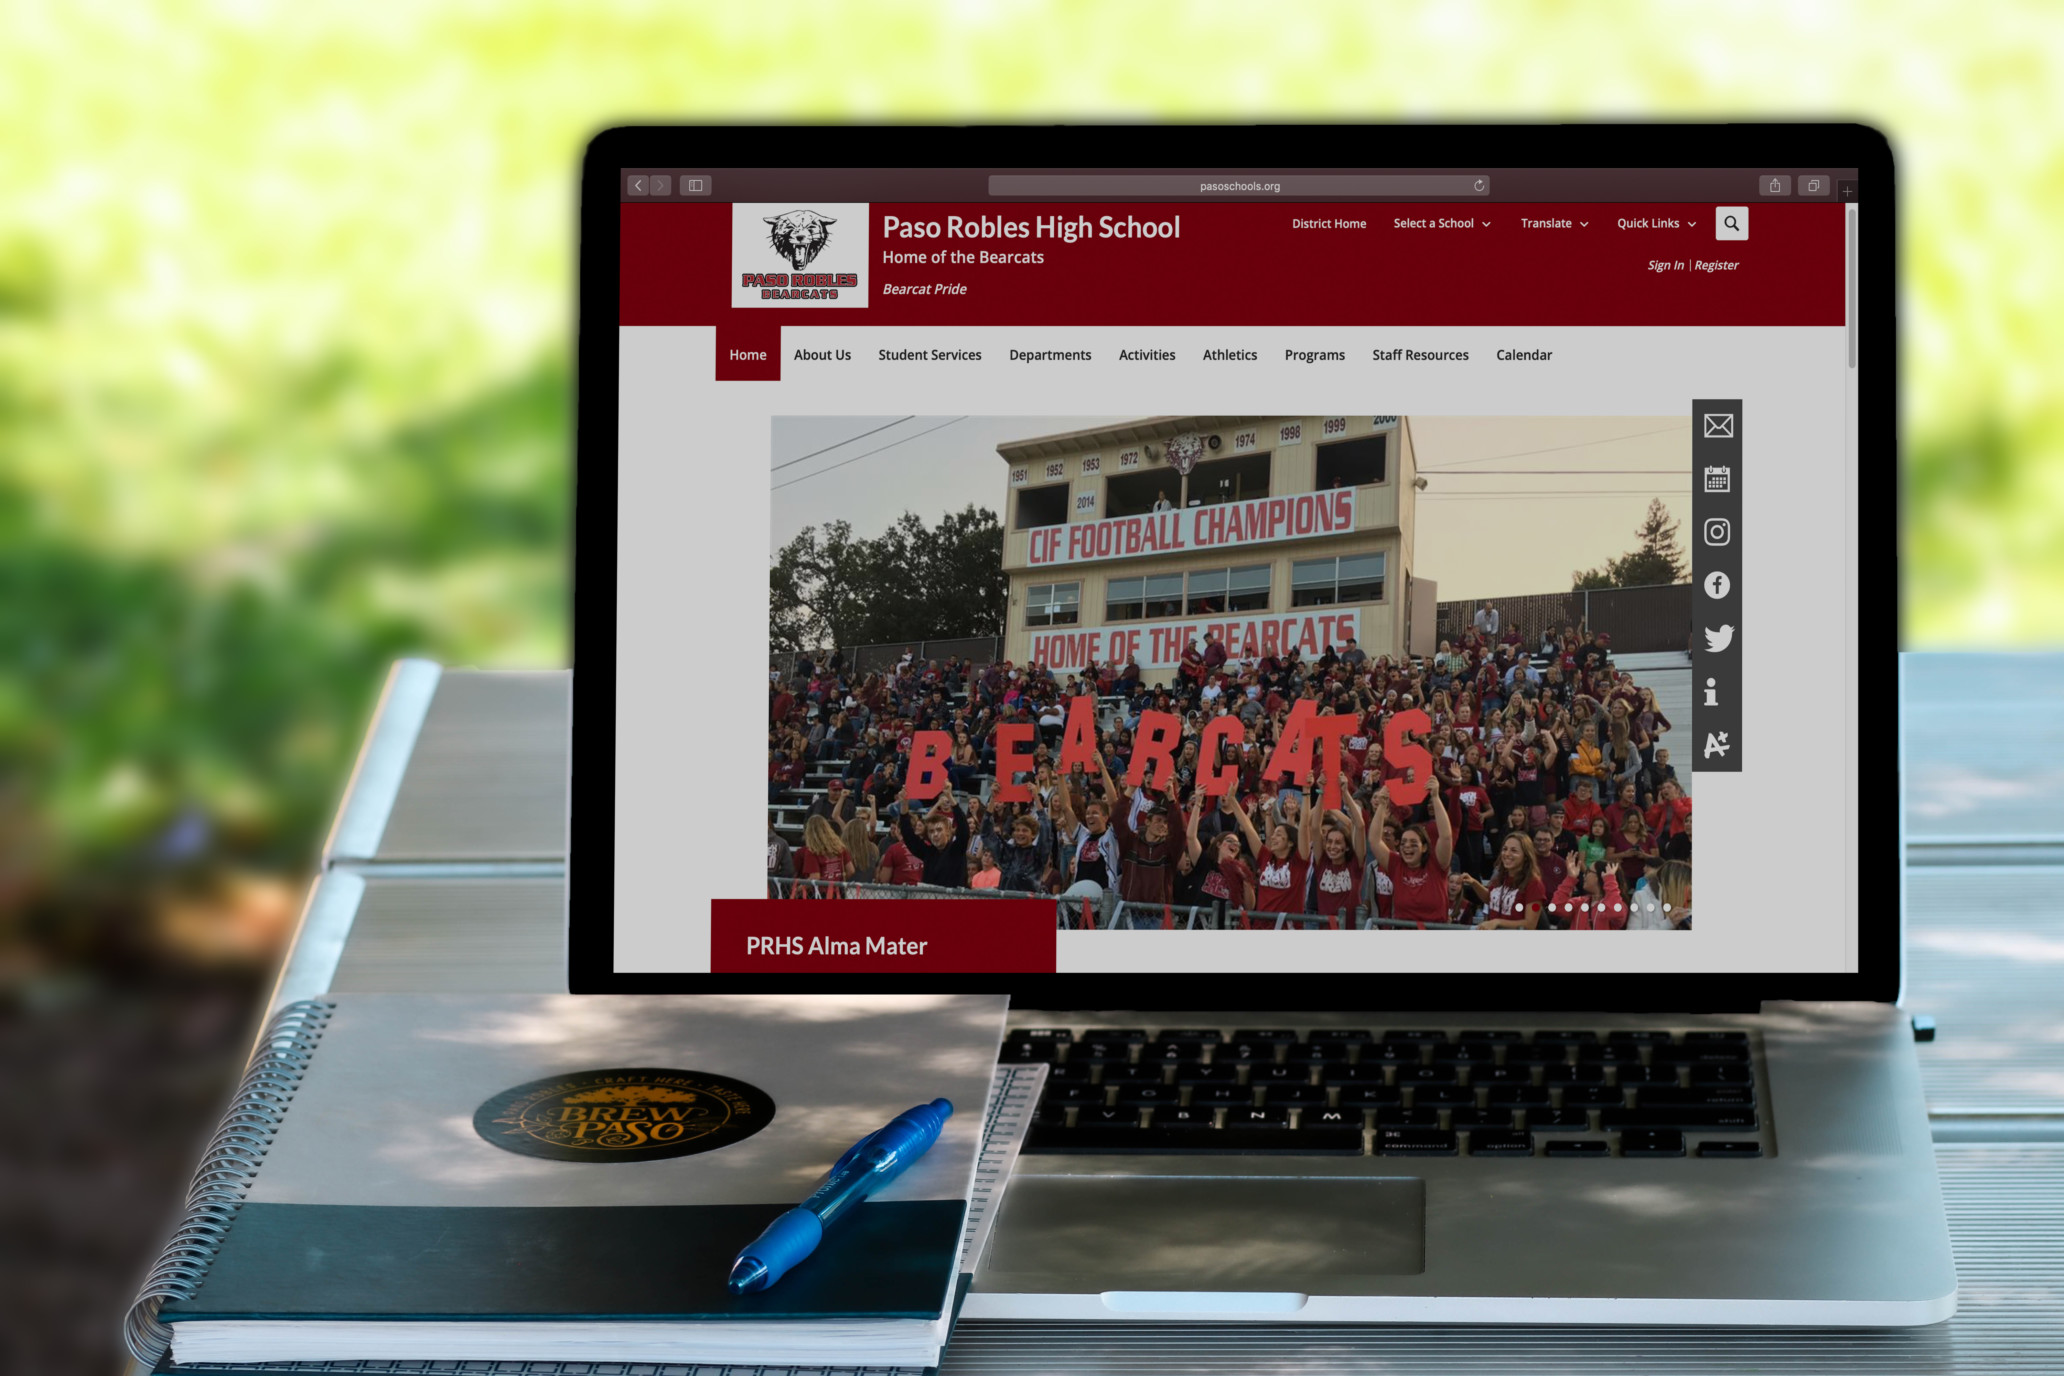 image of Paso Robles highschool website on laptop